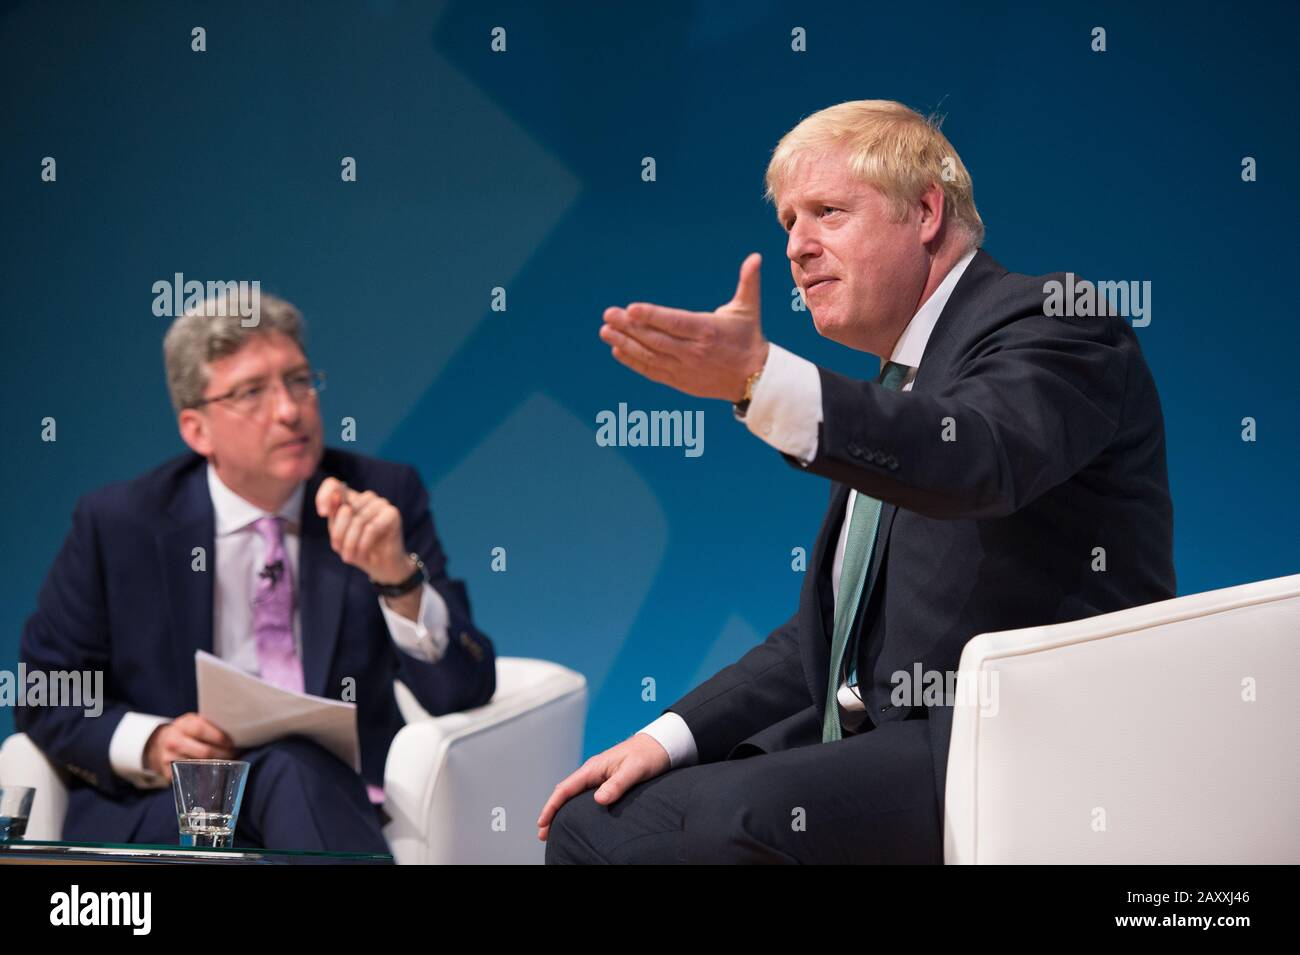 Perth, UK. 5 July 2019.  PICTURED: Colin Mackay, Host and STV Political Editor (left) Boris Johnson MP (right).  Conservative leadership contenders Boris Johnson and Jeremy Hunt are to face Scottish party members at a hustings event in Perth.  The hustings in Perth is the latest in a series of events around the UK which see the two candidates make a speech to local members before taking questions from a host and the audience.  Party members should receive their ballots in the coming days, with the winner to be announced on 23 July. Credit: Colin Fisher/Alamy Live News Stock Photo